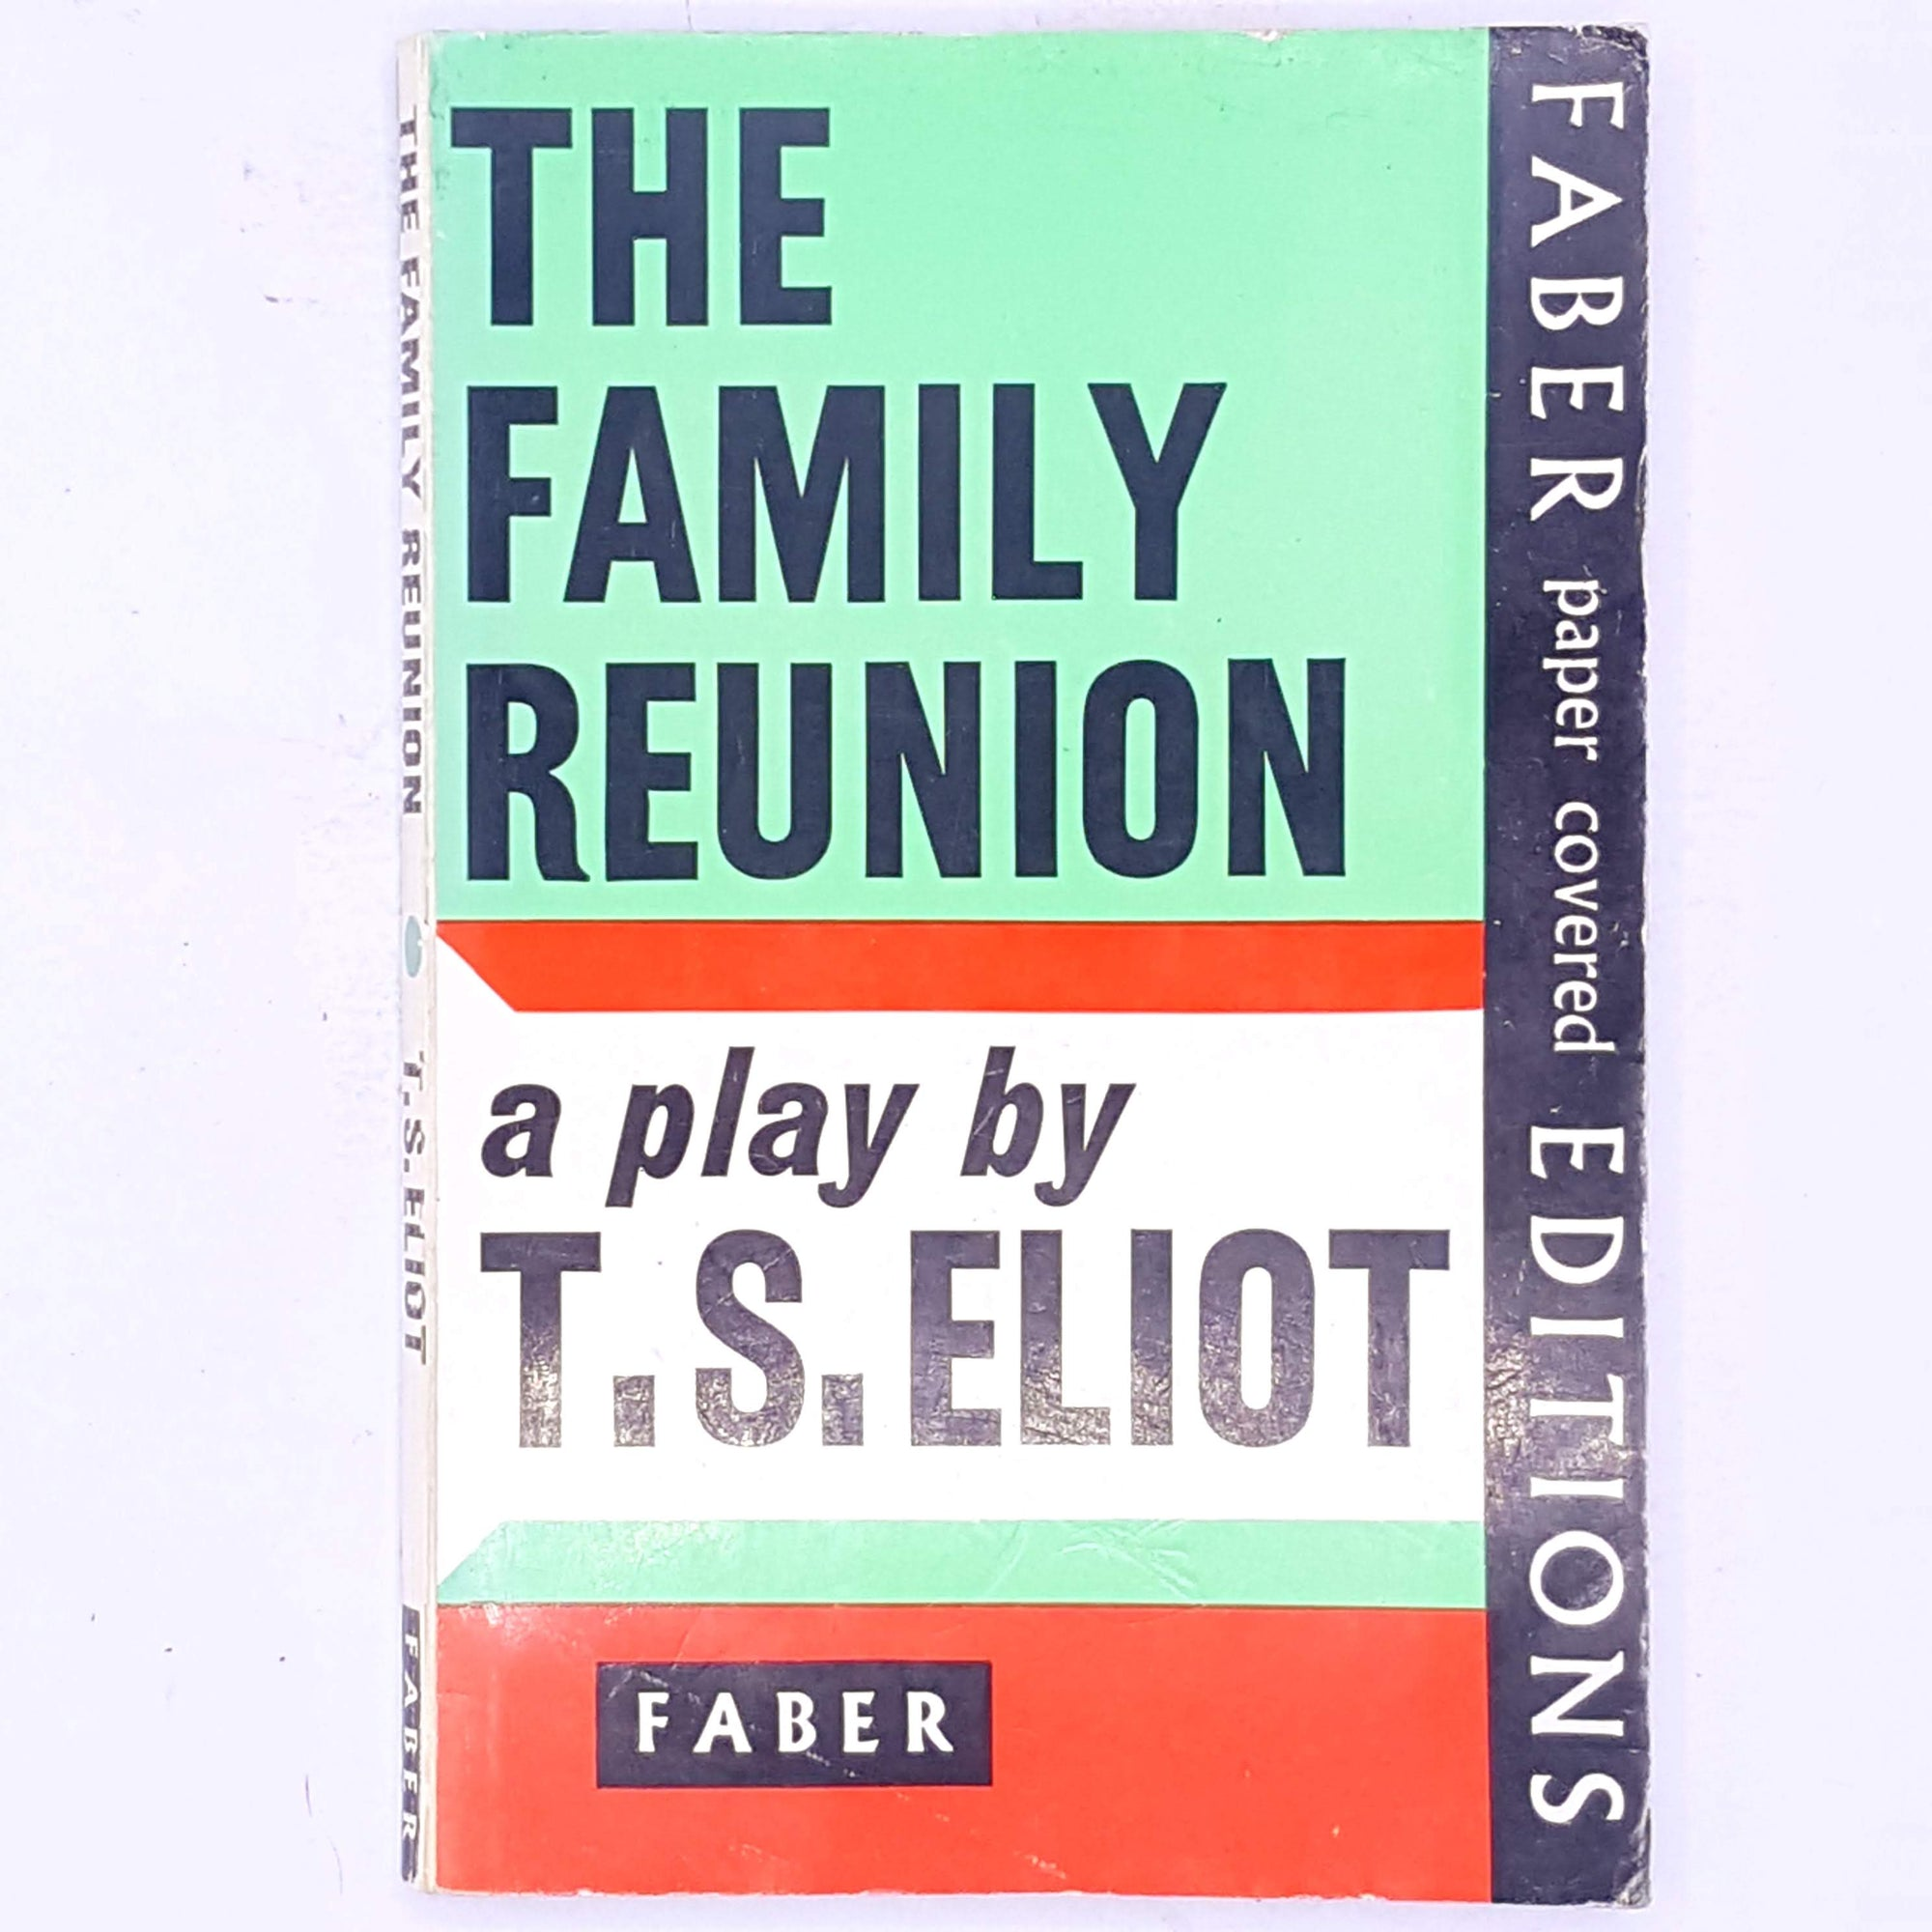 The Family Reunion by T.S. Eliot